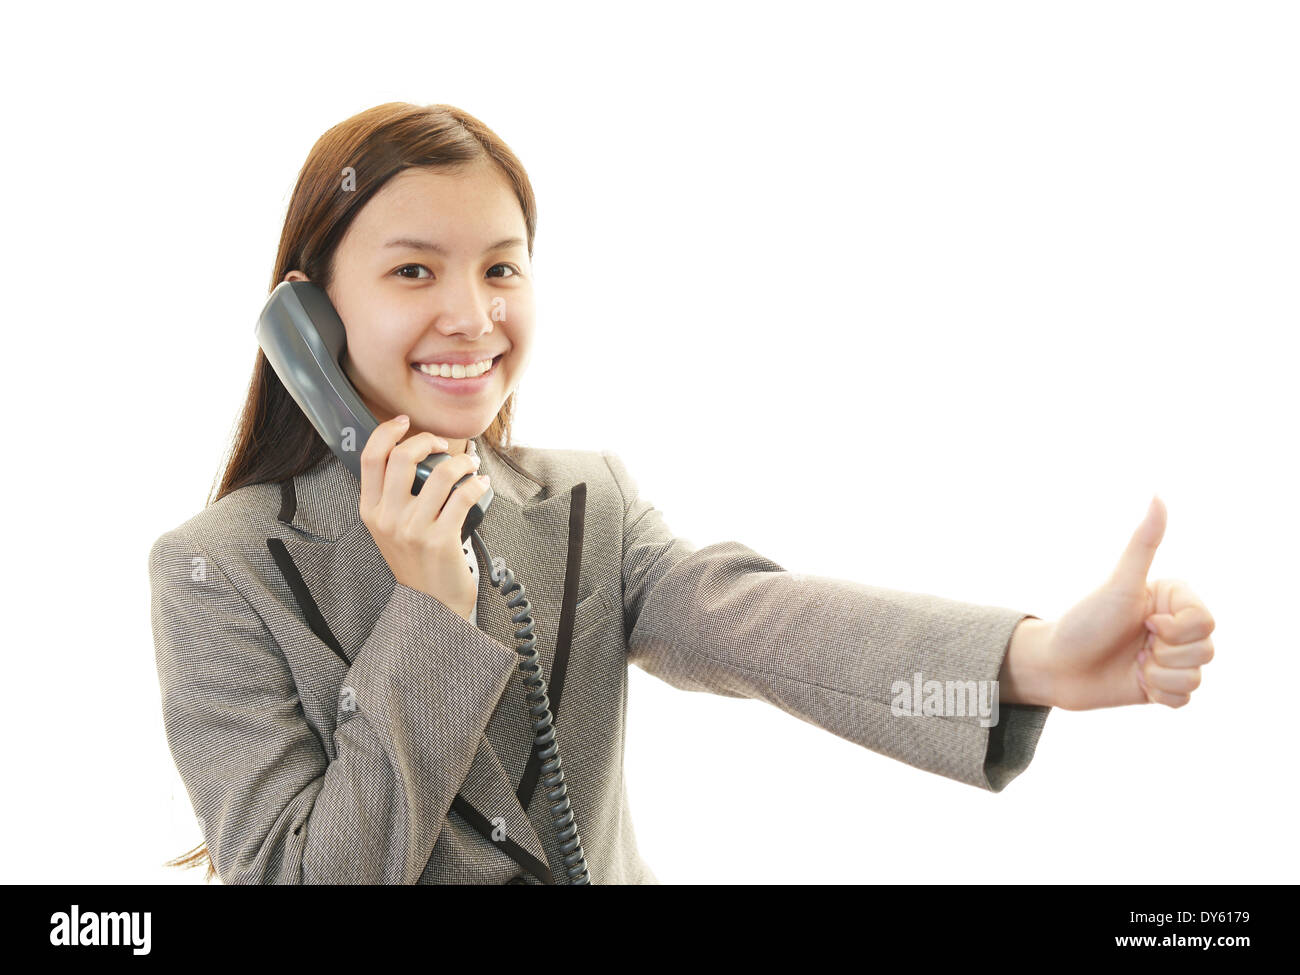 Handset with woman. - Stock Image